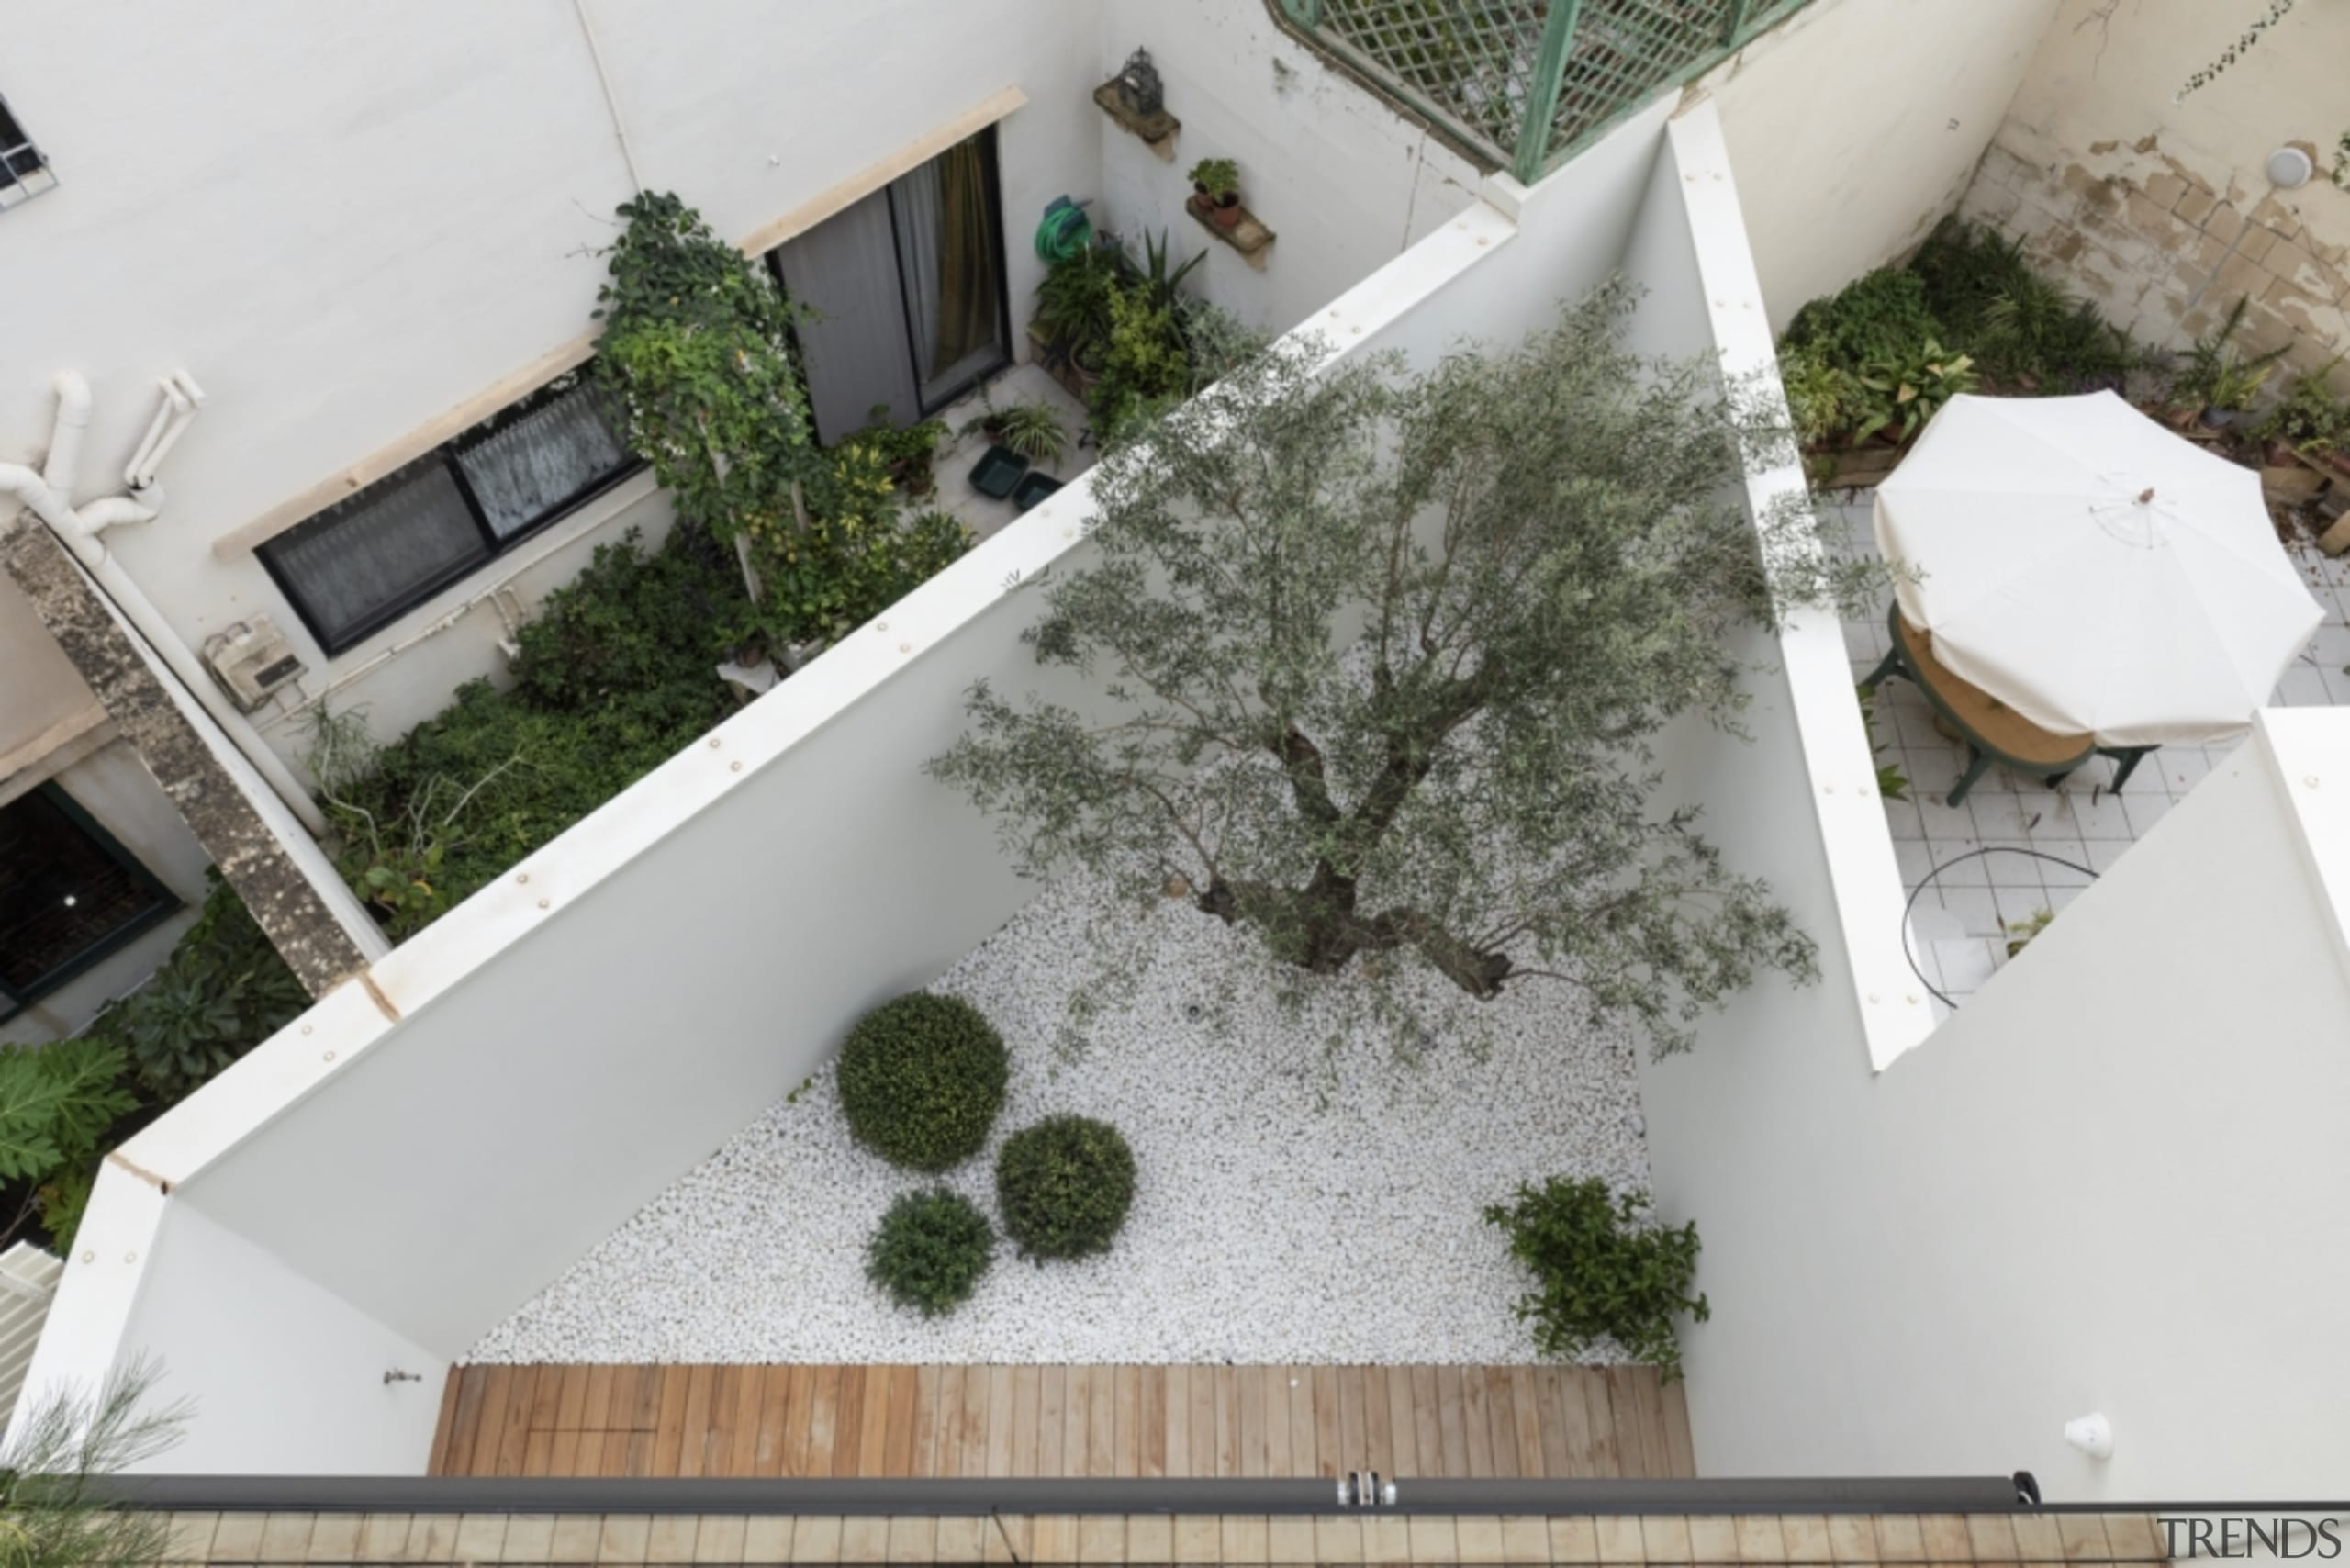 The home includes an outdoor courtyard at the architecture, building, courtyard, floor, grass, home, house, landscape, plant, property, real estate, roof, room, urban design, gray, outdoor living